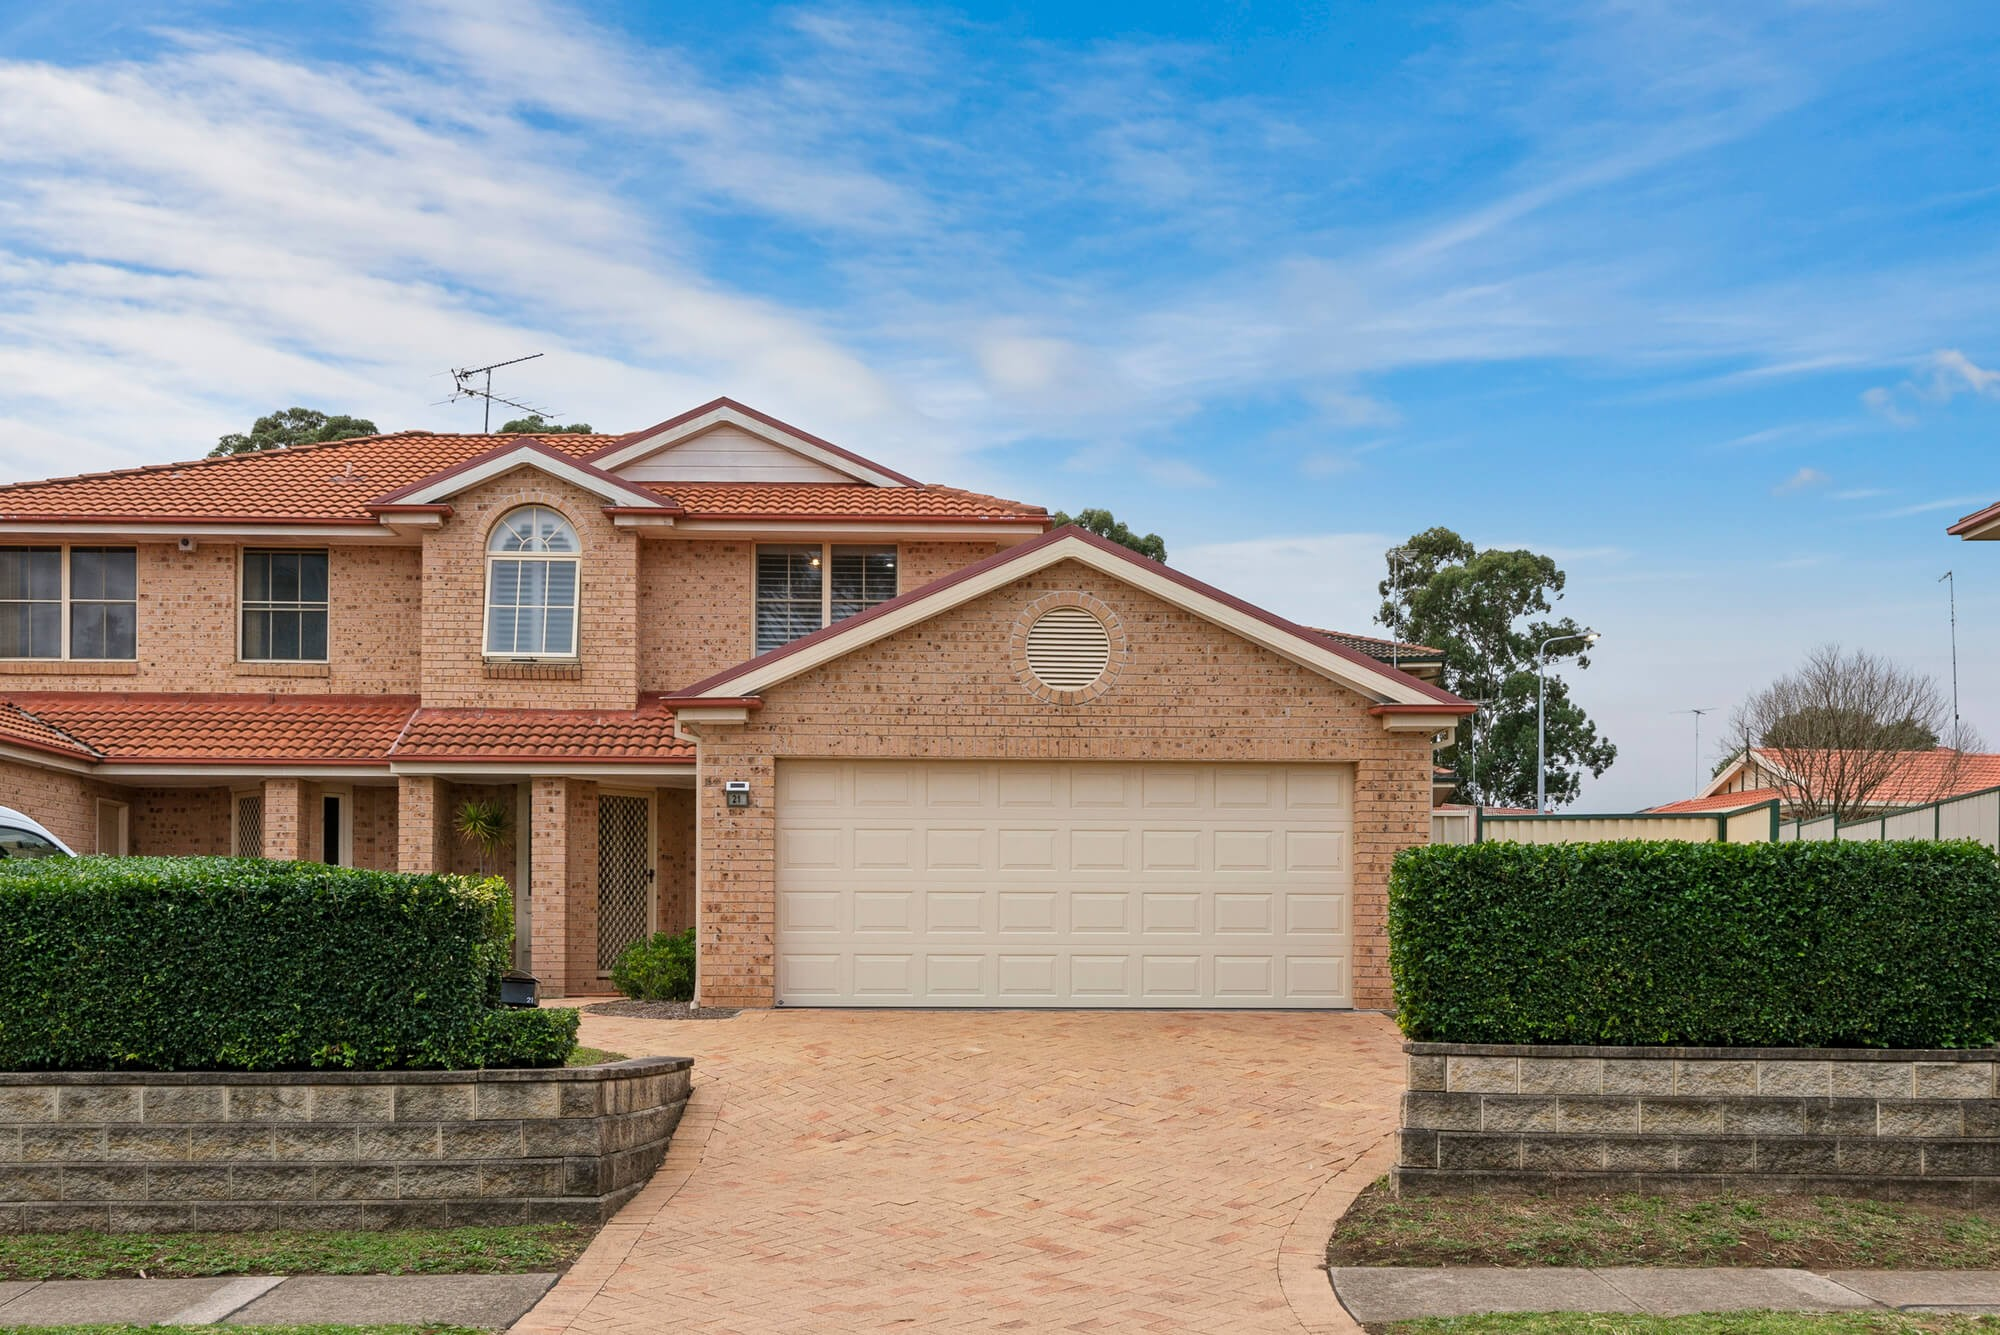 21 Bricketwood Drive Woodcroft NSW 2767